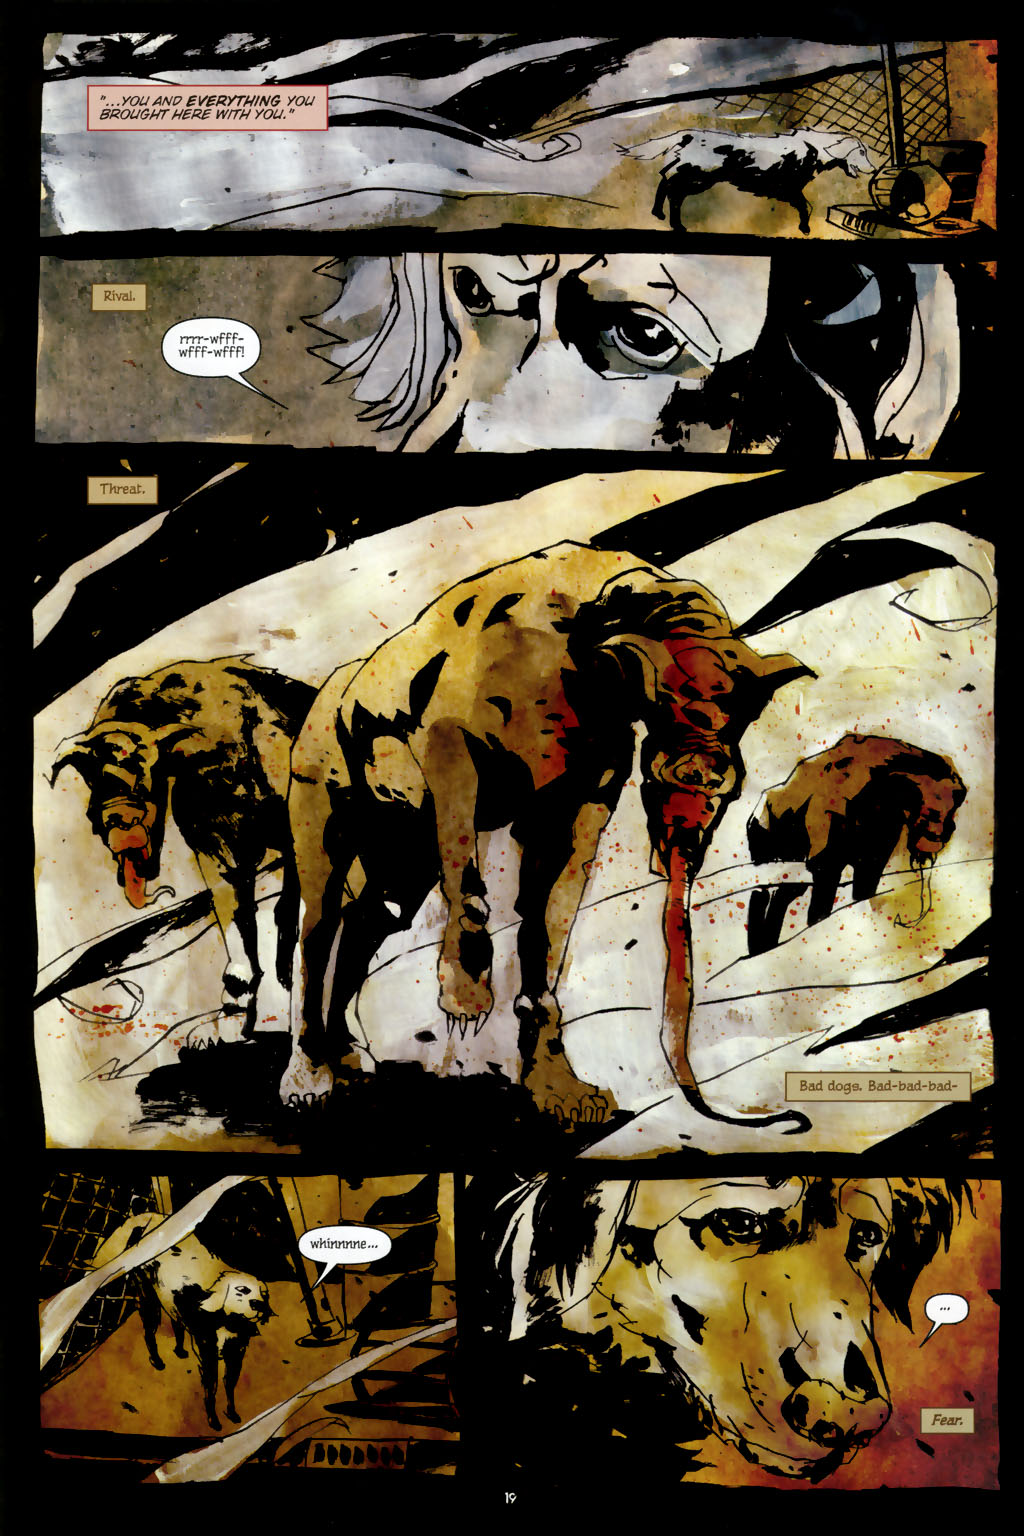 Read online Silent Hill: Dead/Alive comic -  Issue #2 - 21